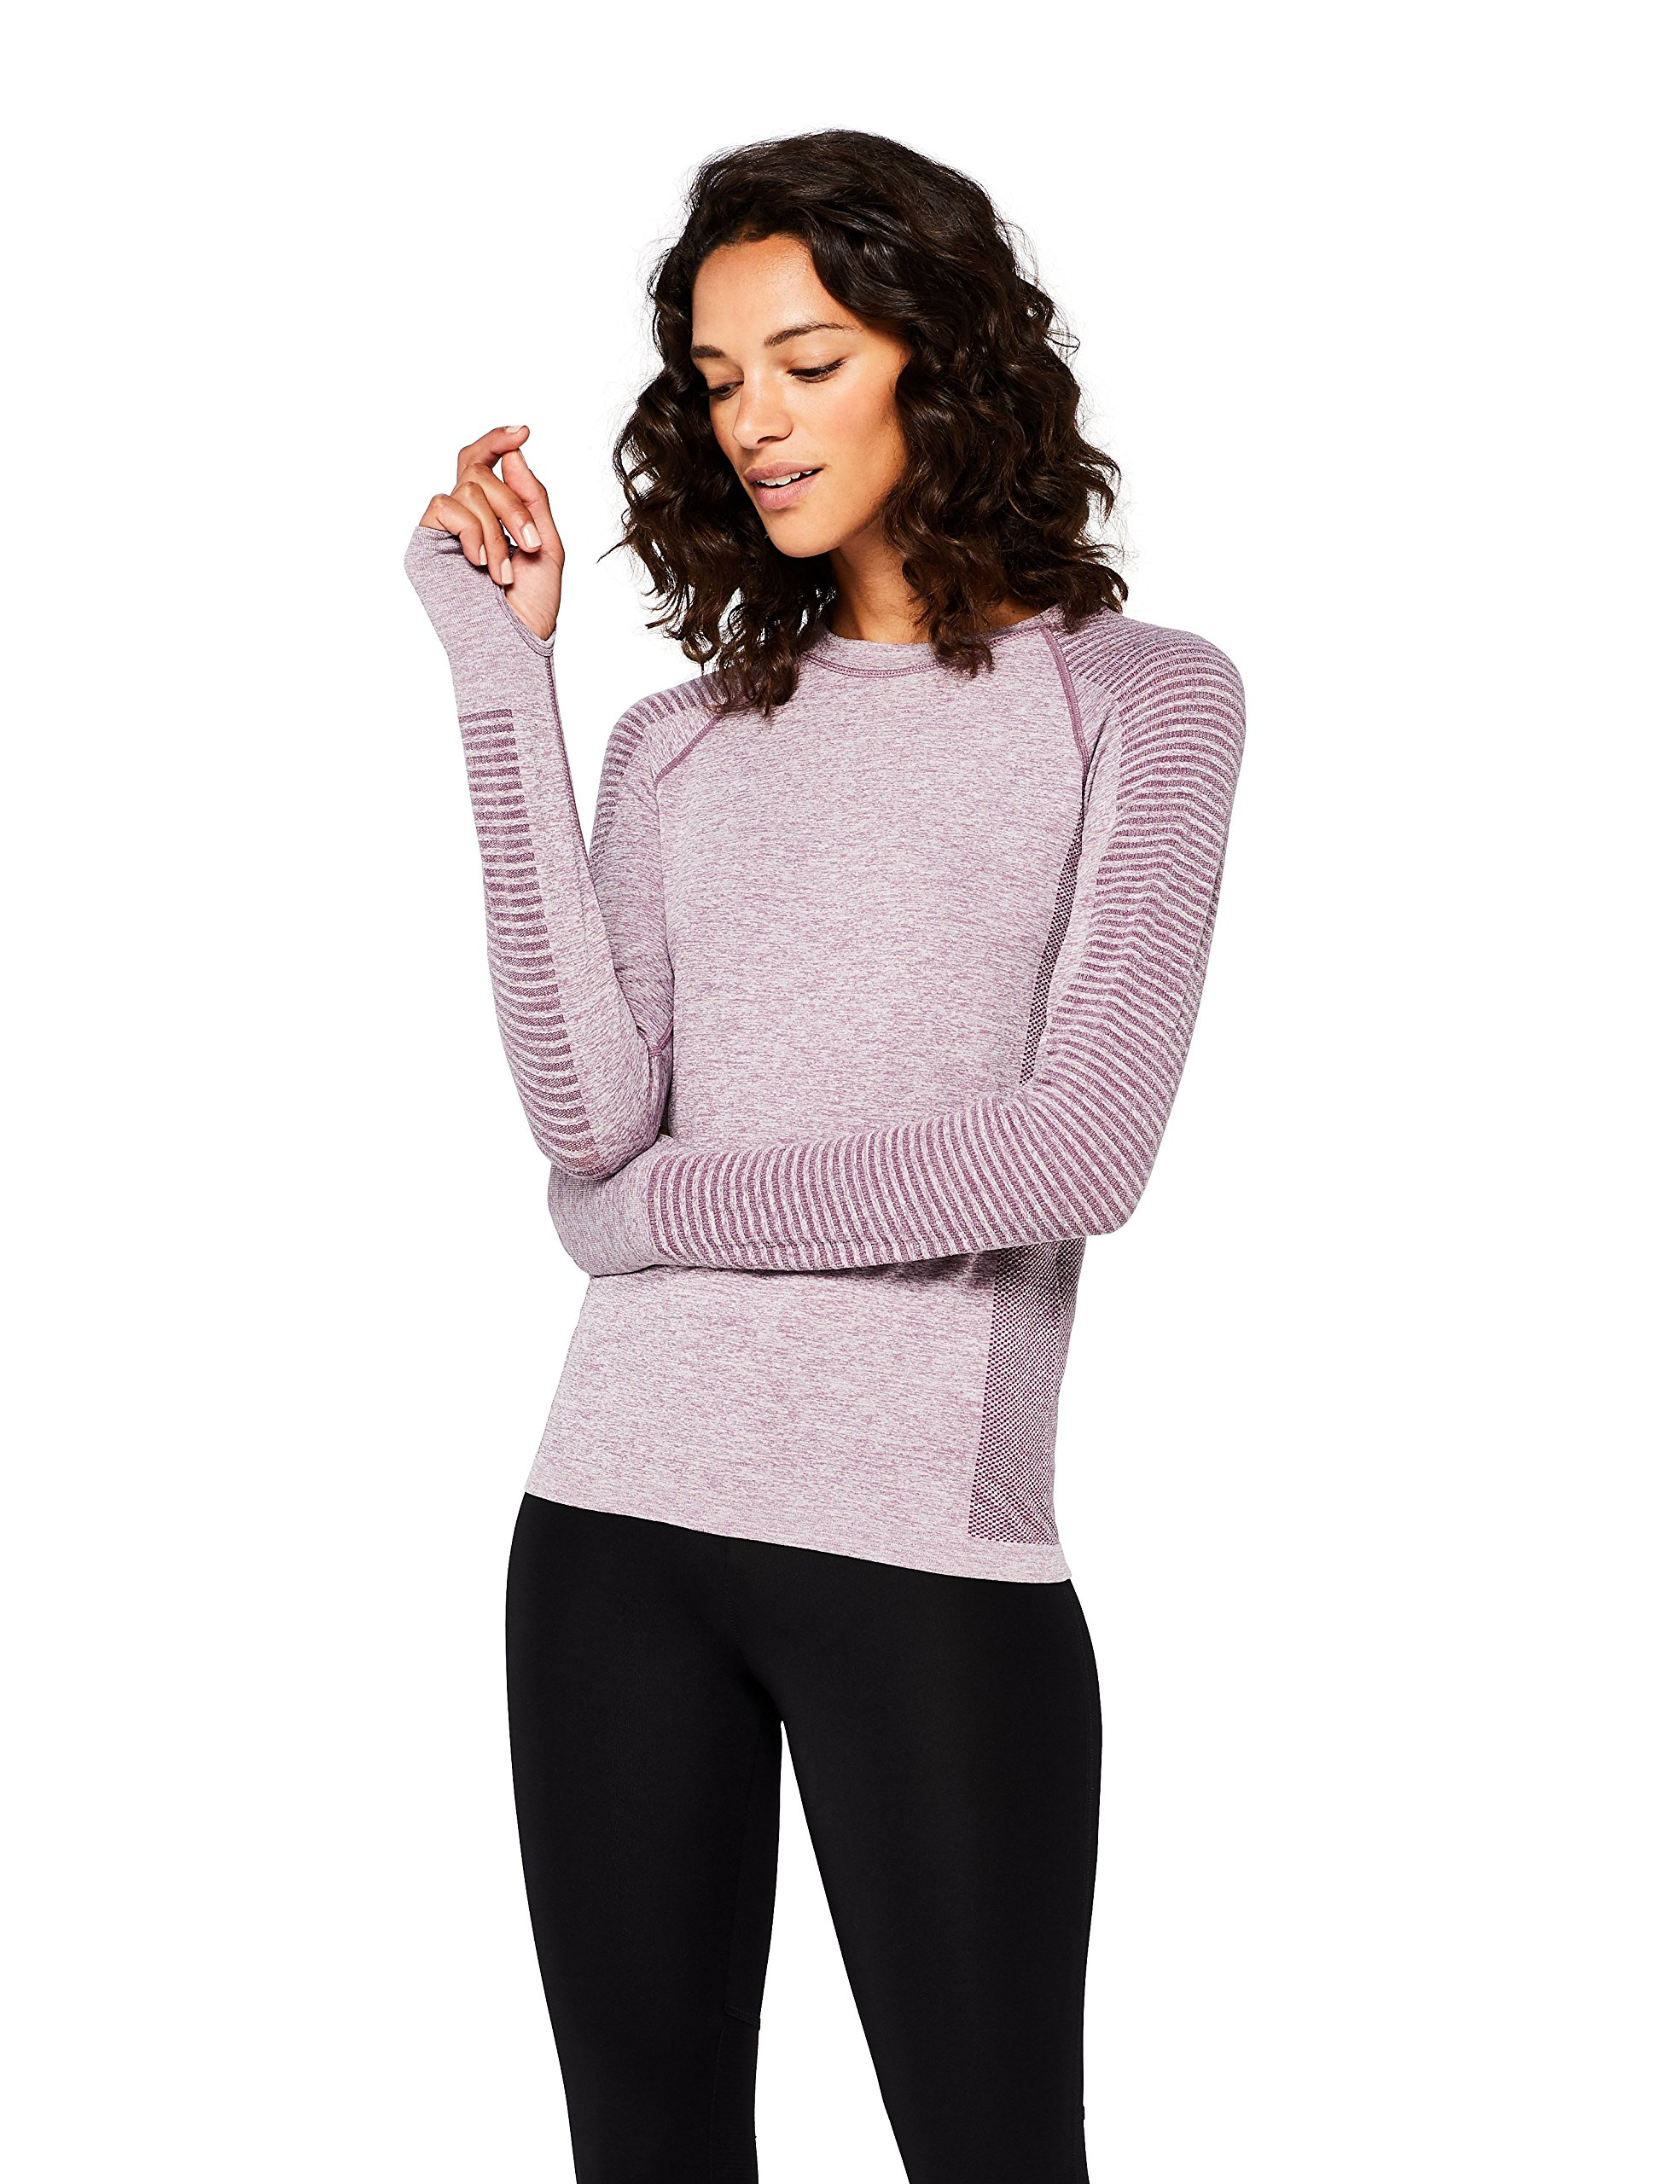 Amazon Brand - AURIQUE Women's Seamless Long Sleeve Sports Top 1